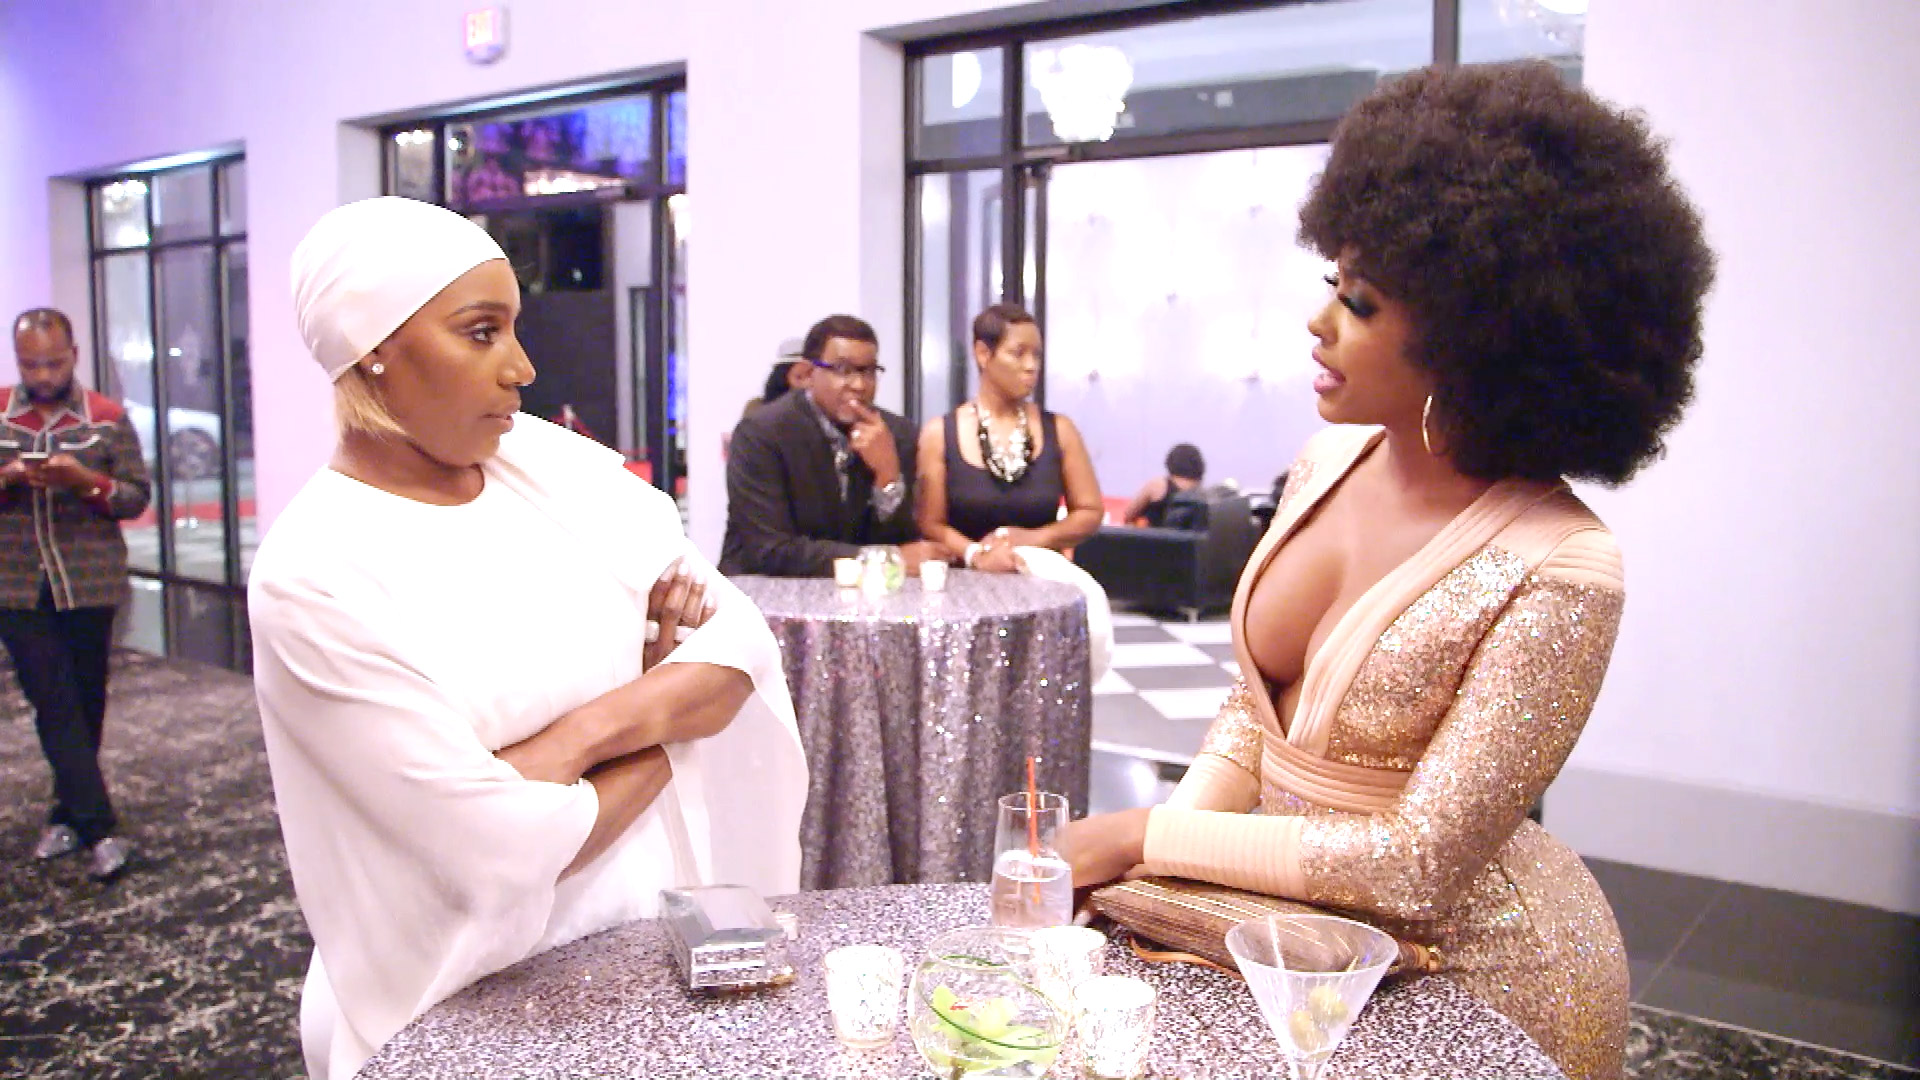 NeNe Leakes Confronts Porsha Williams About Their Issues